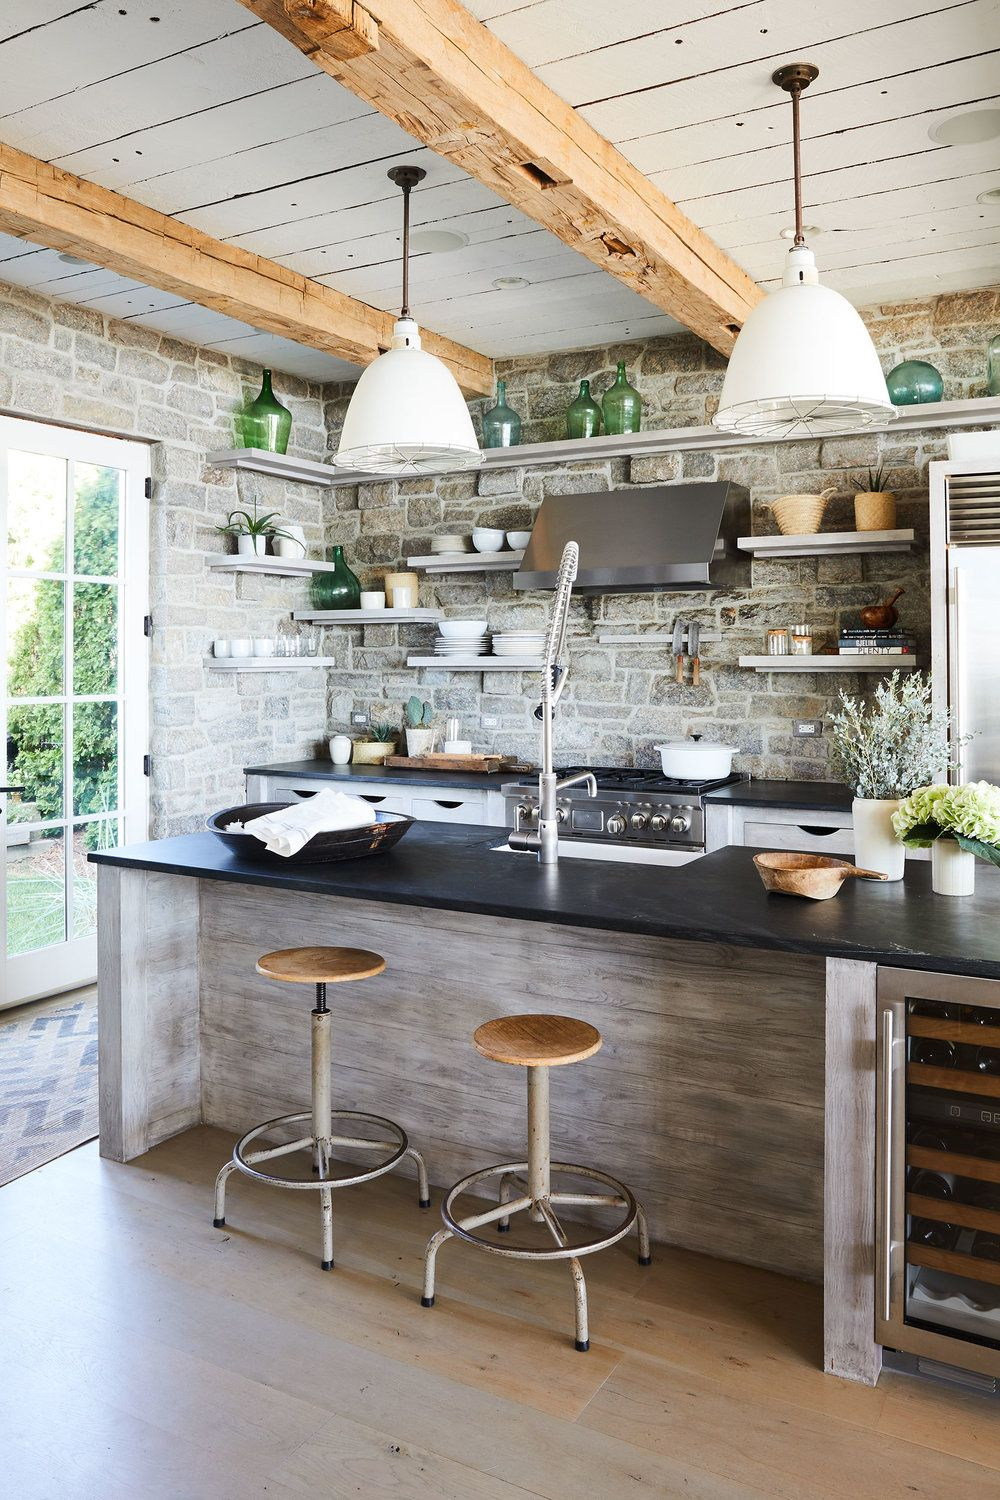 15 best rustic kitchens - modern country rustic kitchen